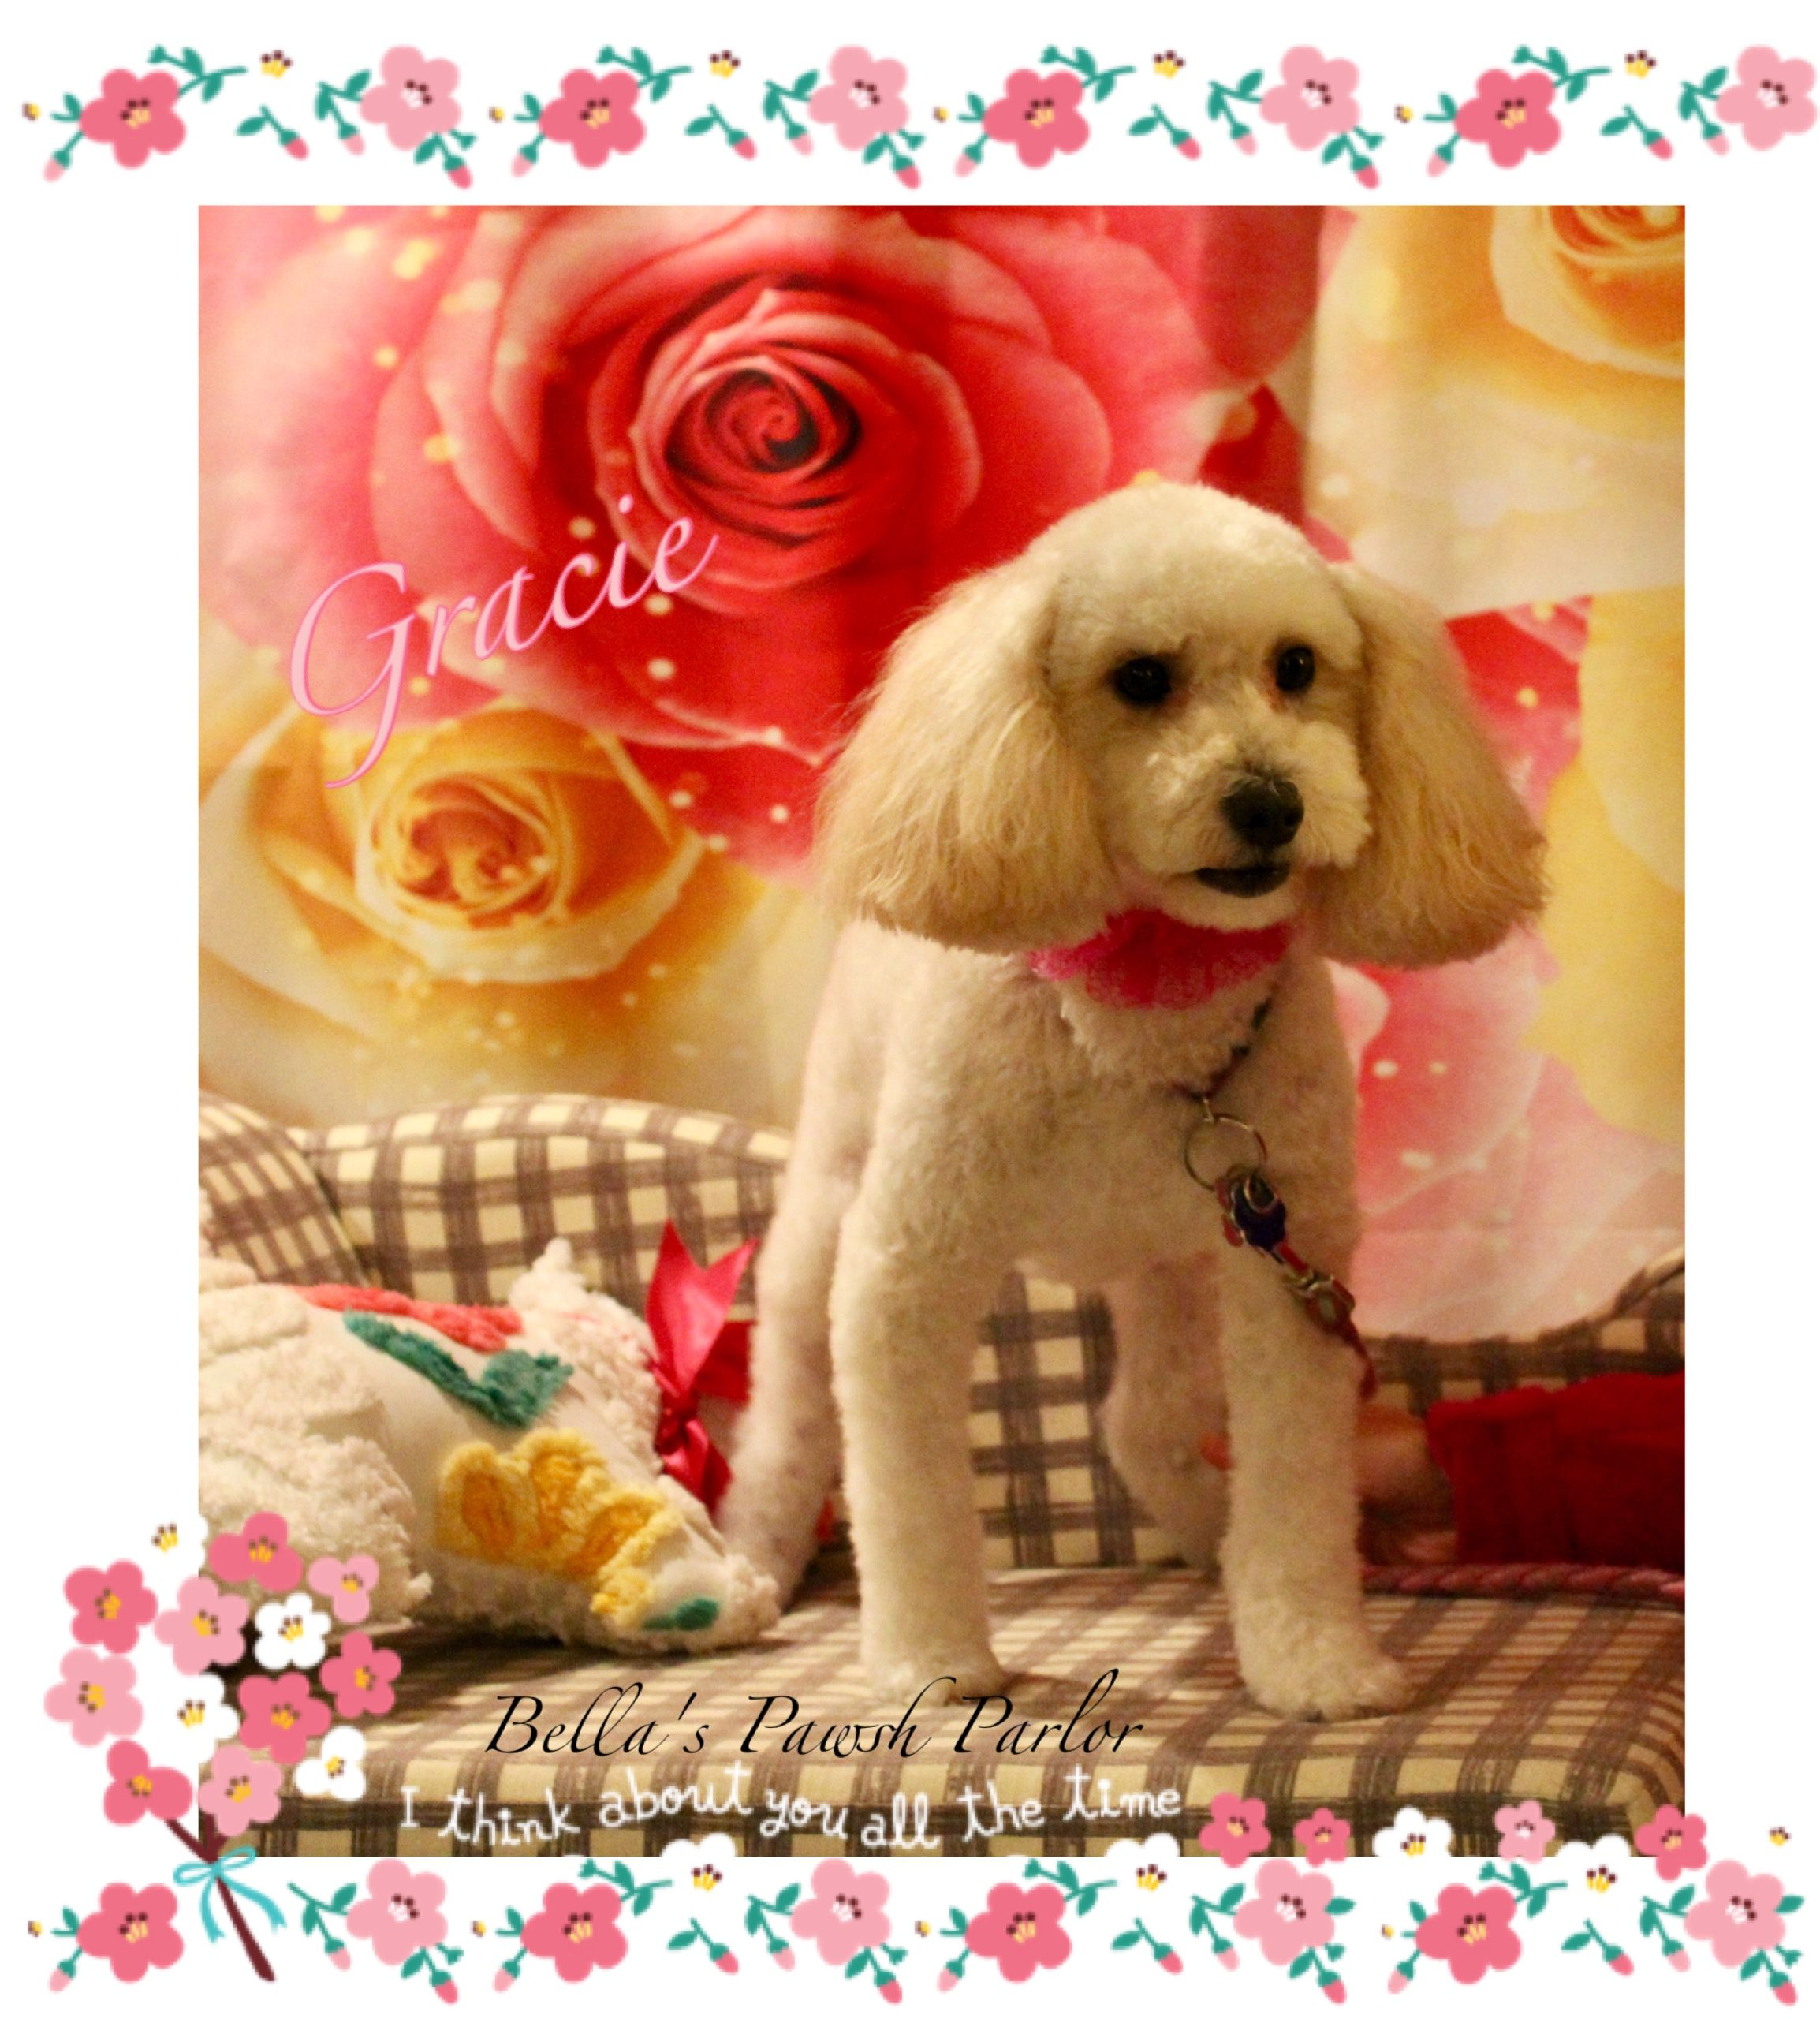 Pin By Lorna Mcallister On Bella S Pawsh Parlor Toy Poodle Golden Retriever Poodle